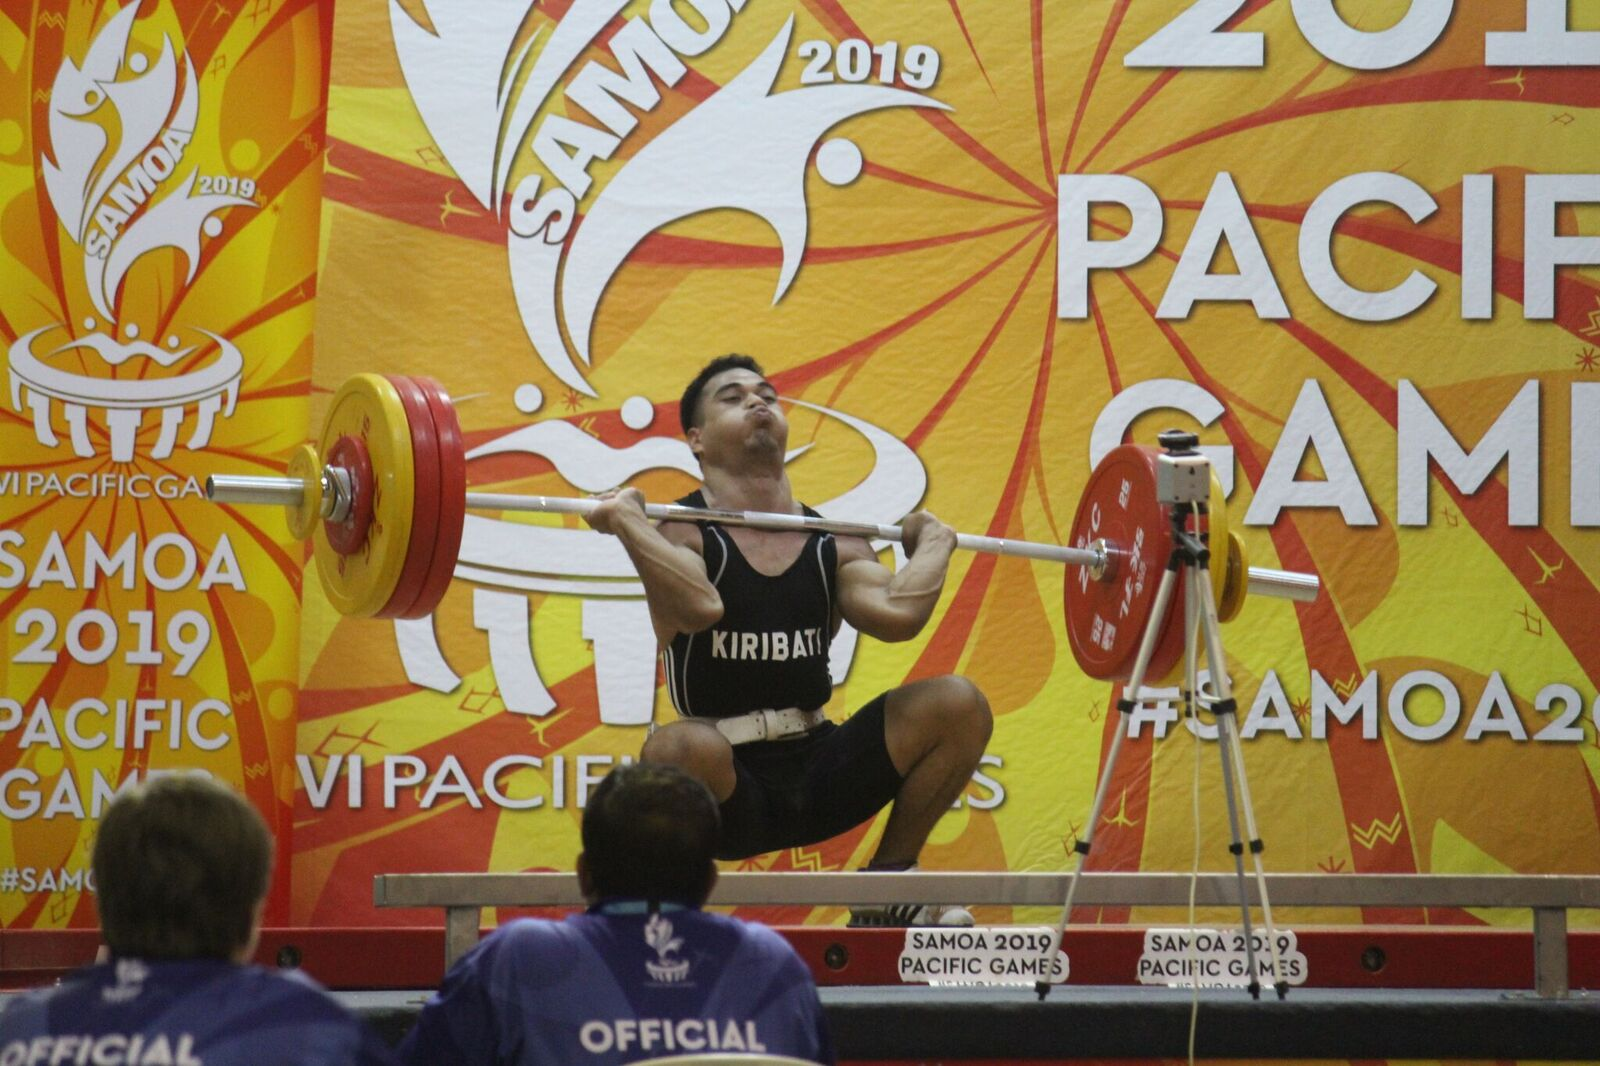 Samoa 2019: Day four of competition